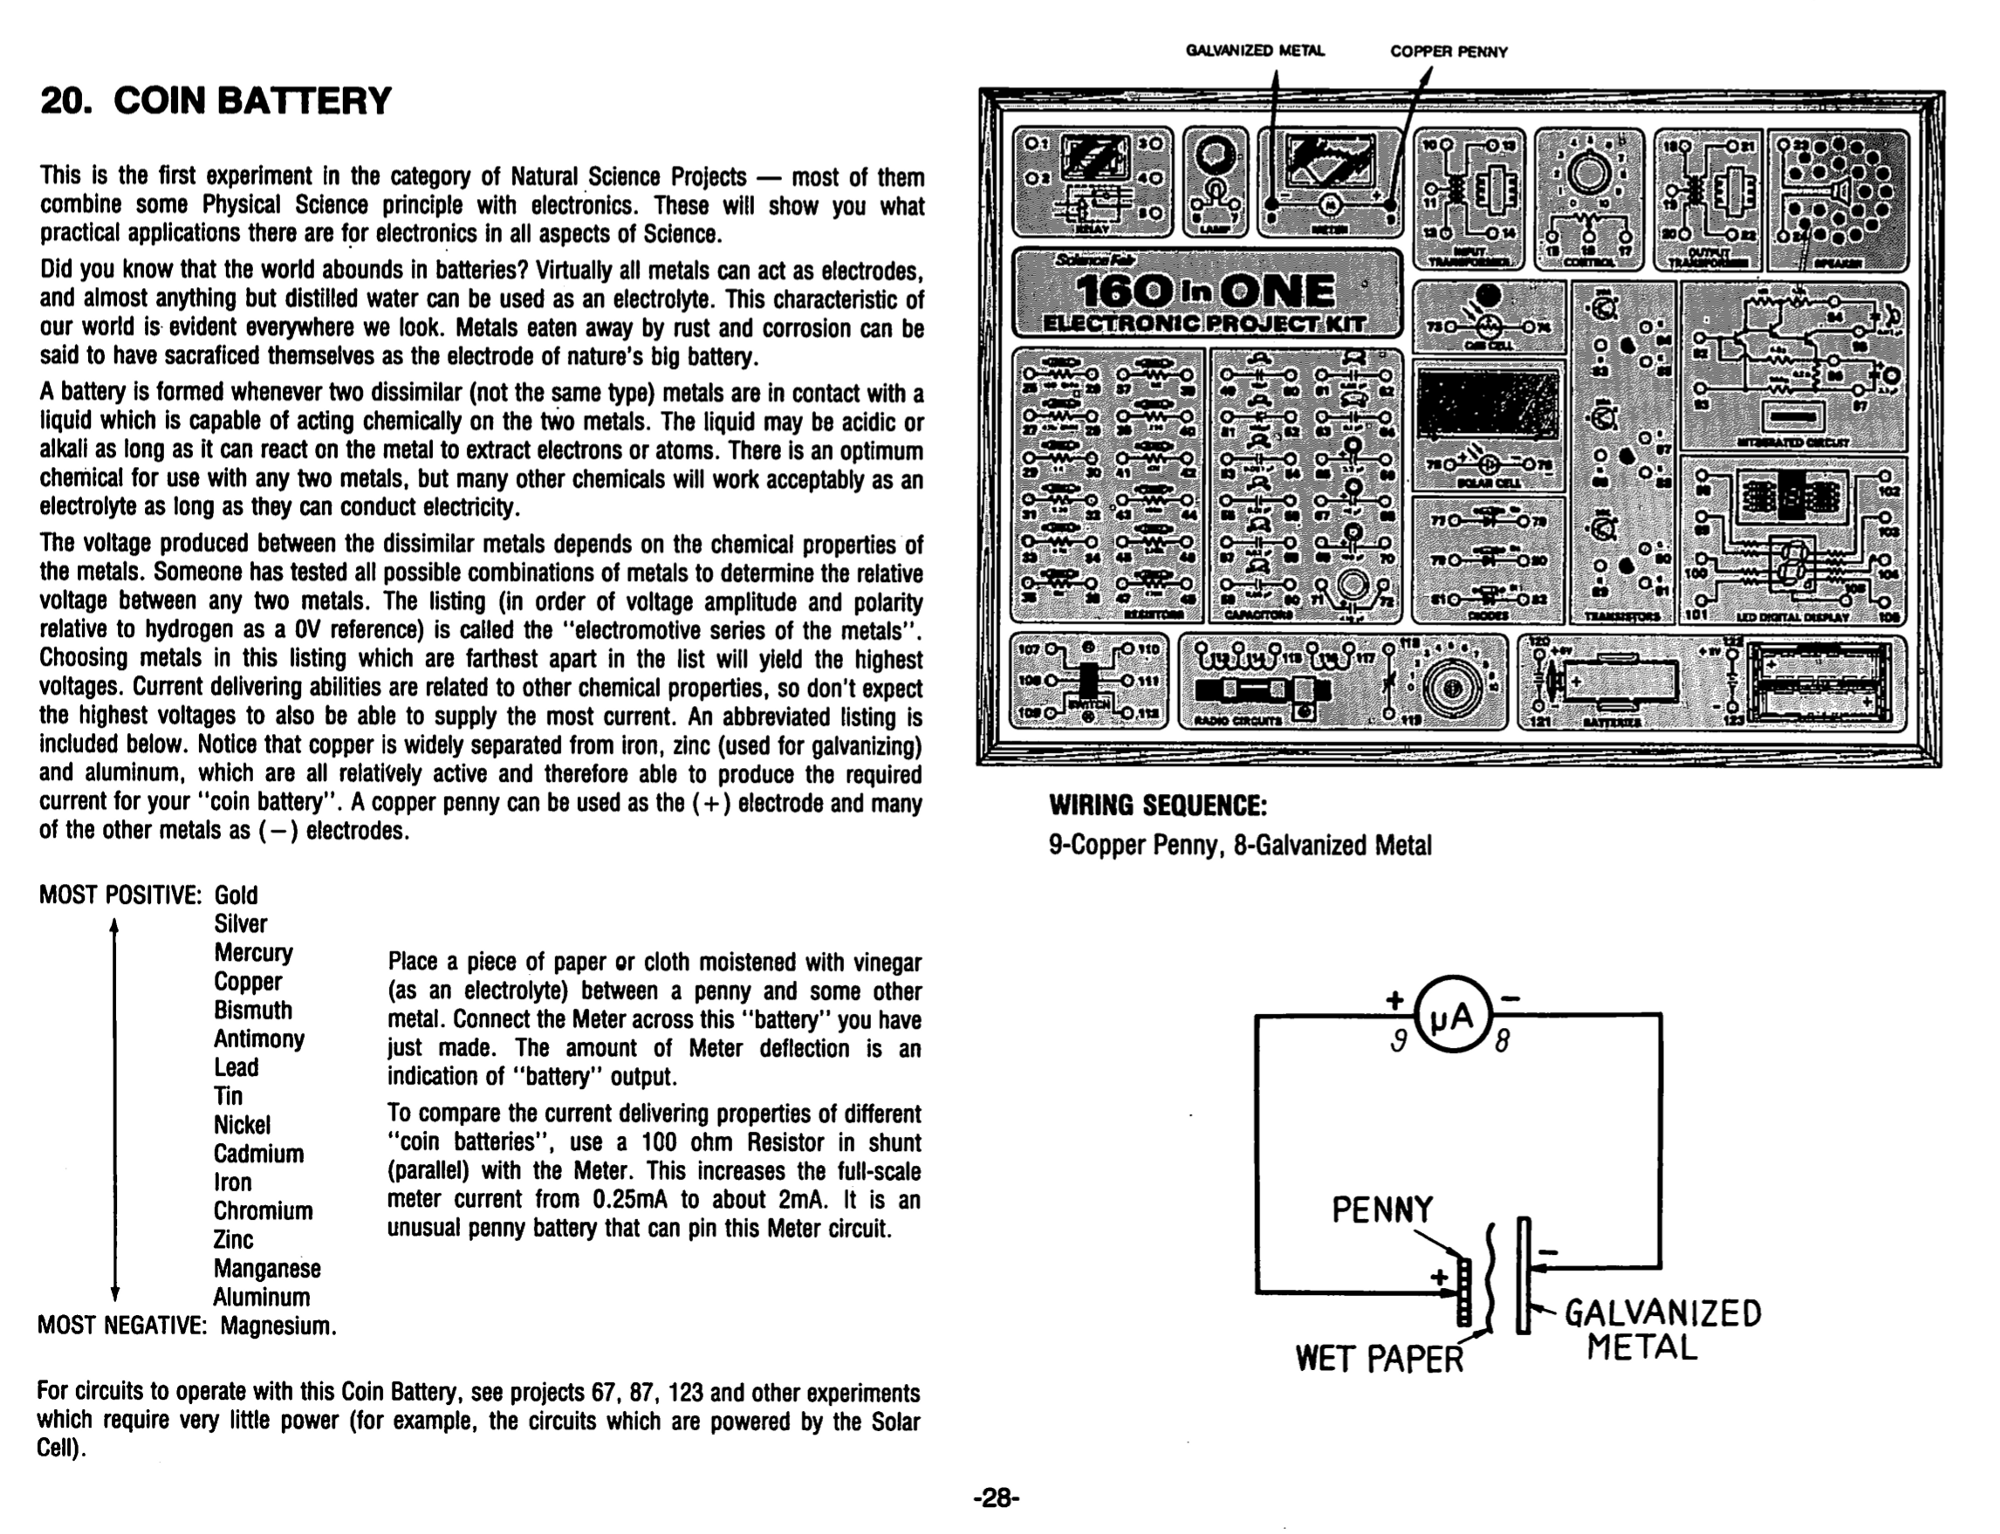 Electronic Project Kits Hands On With A Vintage 160 In 1 Circuit Projects Diagram Coin Battery And Related Which Itself Are About Creating From Galvanized Metal Cent